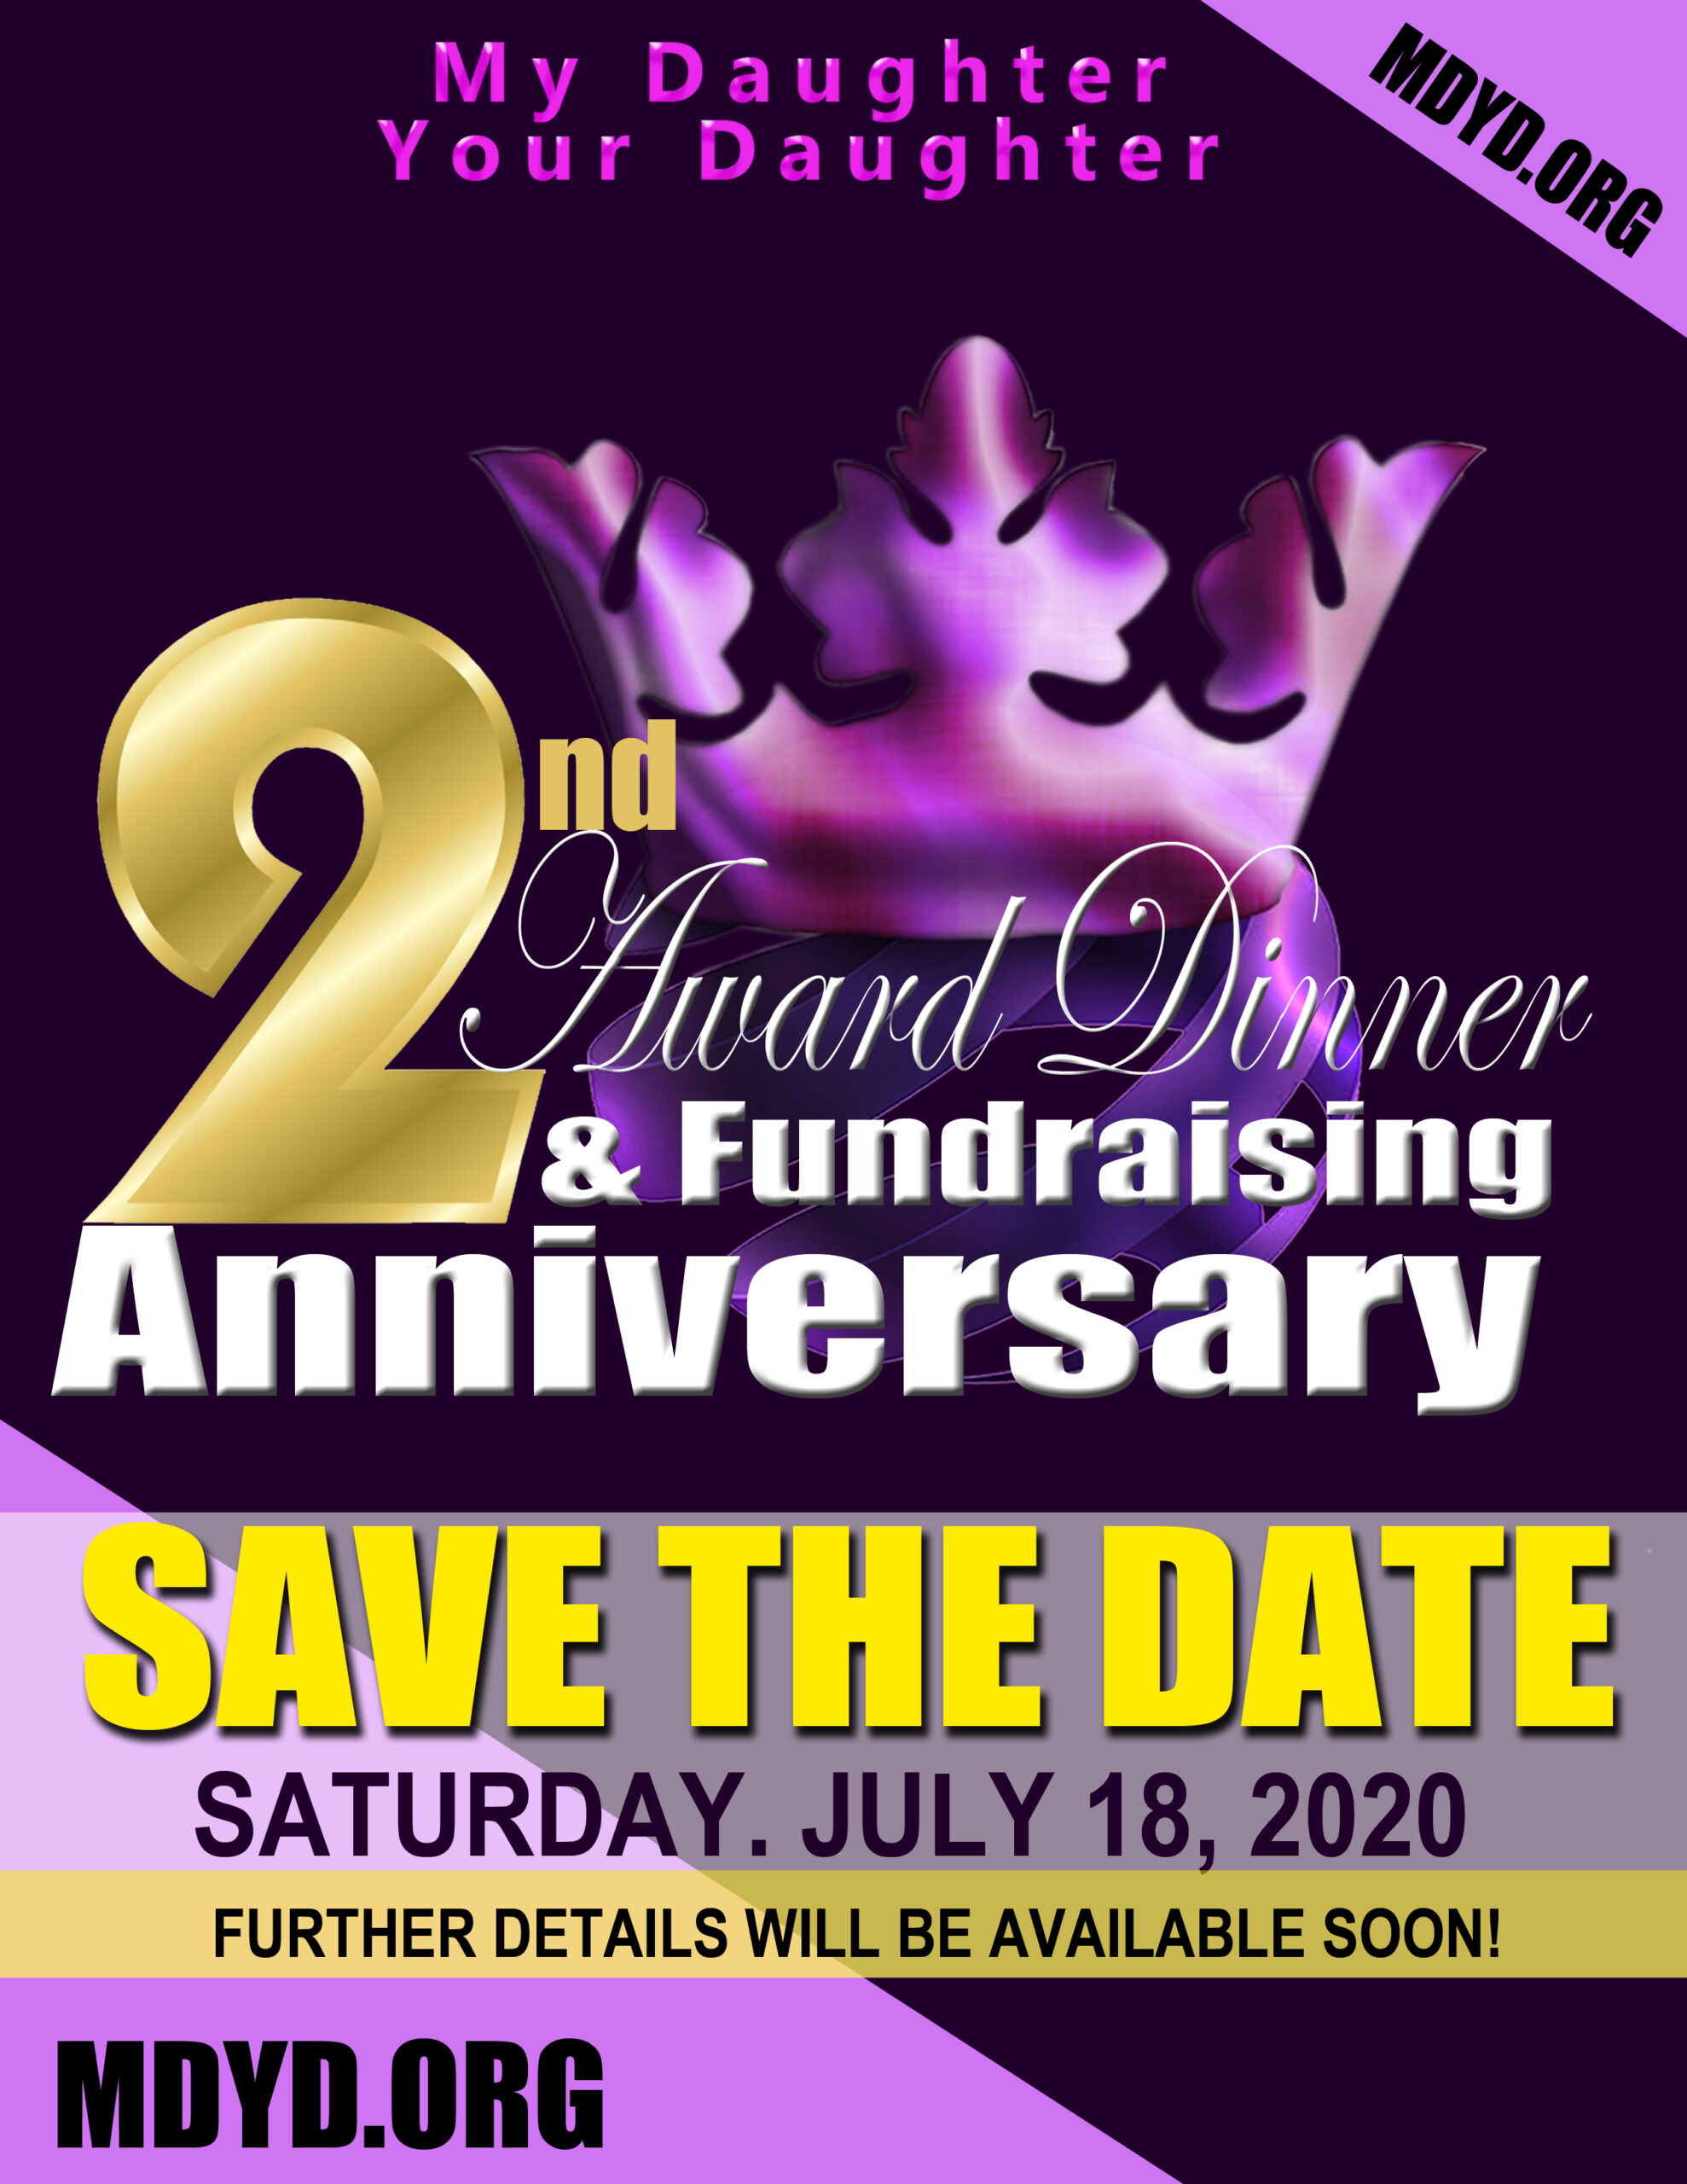 MDYD SAVE THE DATE